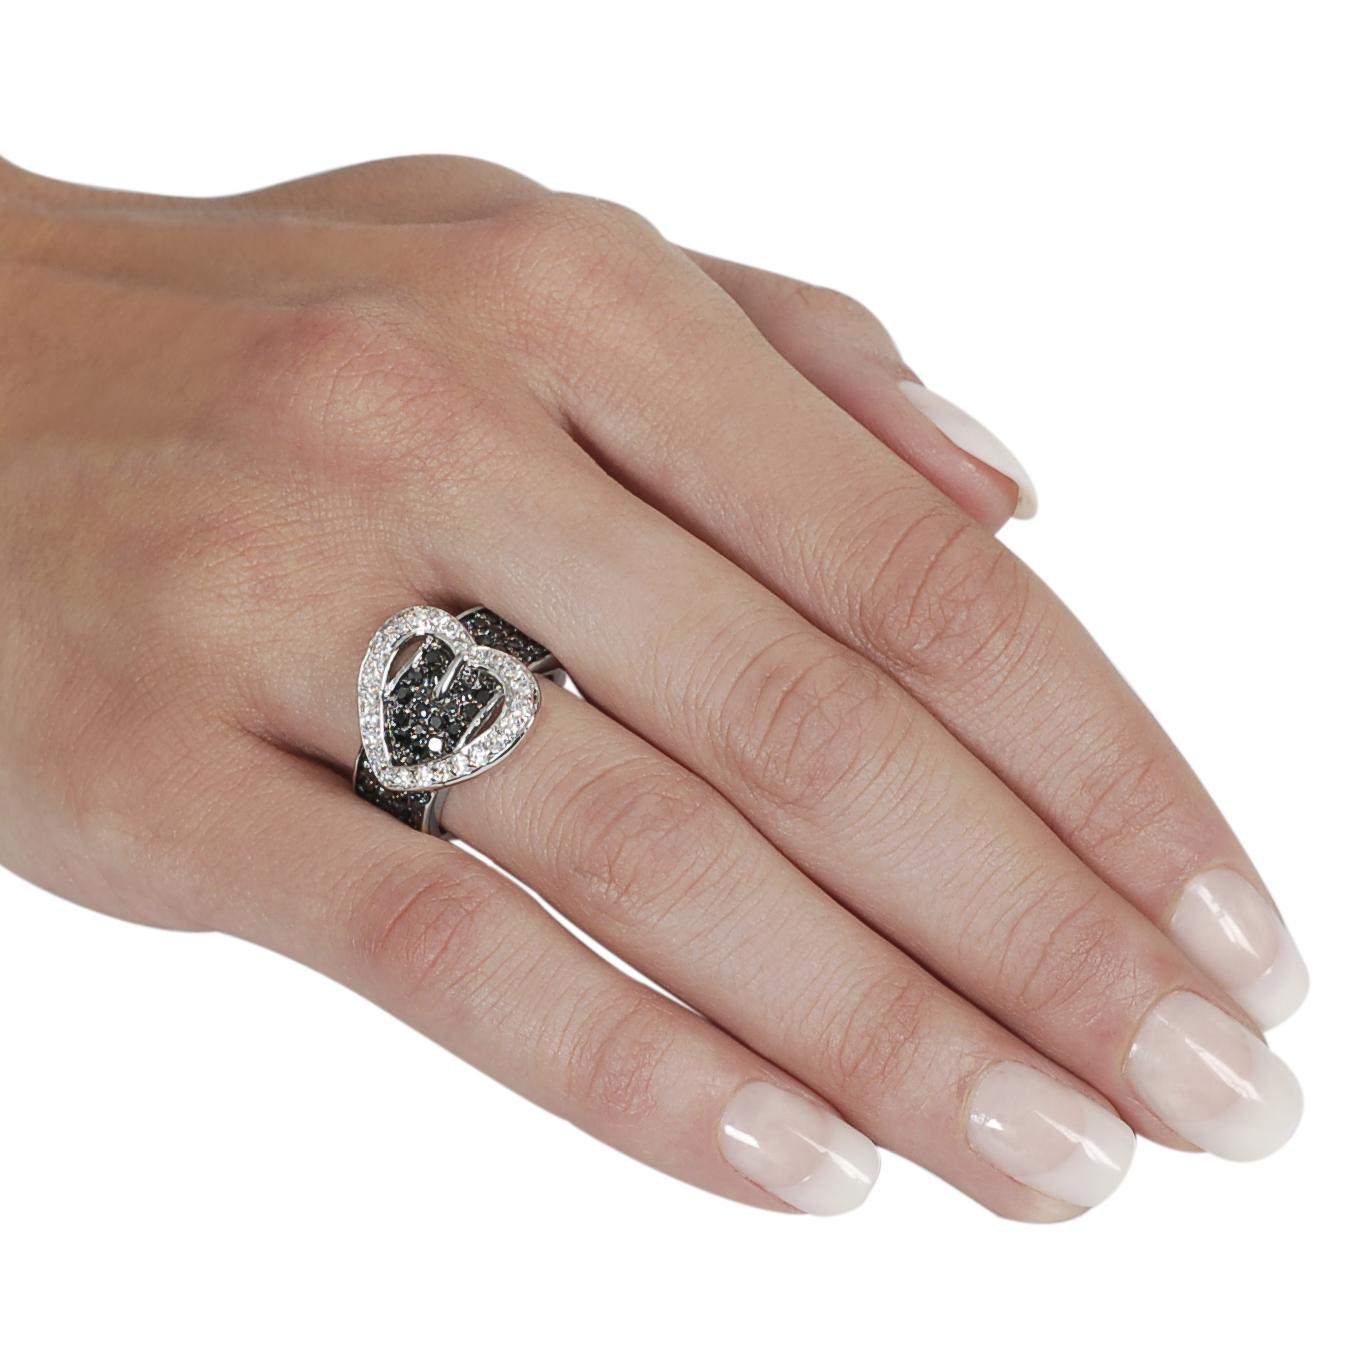 Silvertone Pave-set Black and White Cubic Zirconia Heart Buckle Ring - Thumbnail 2